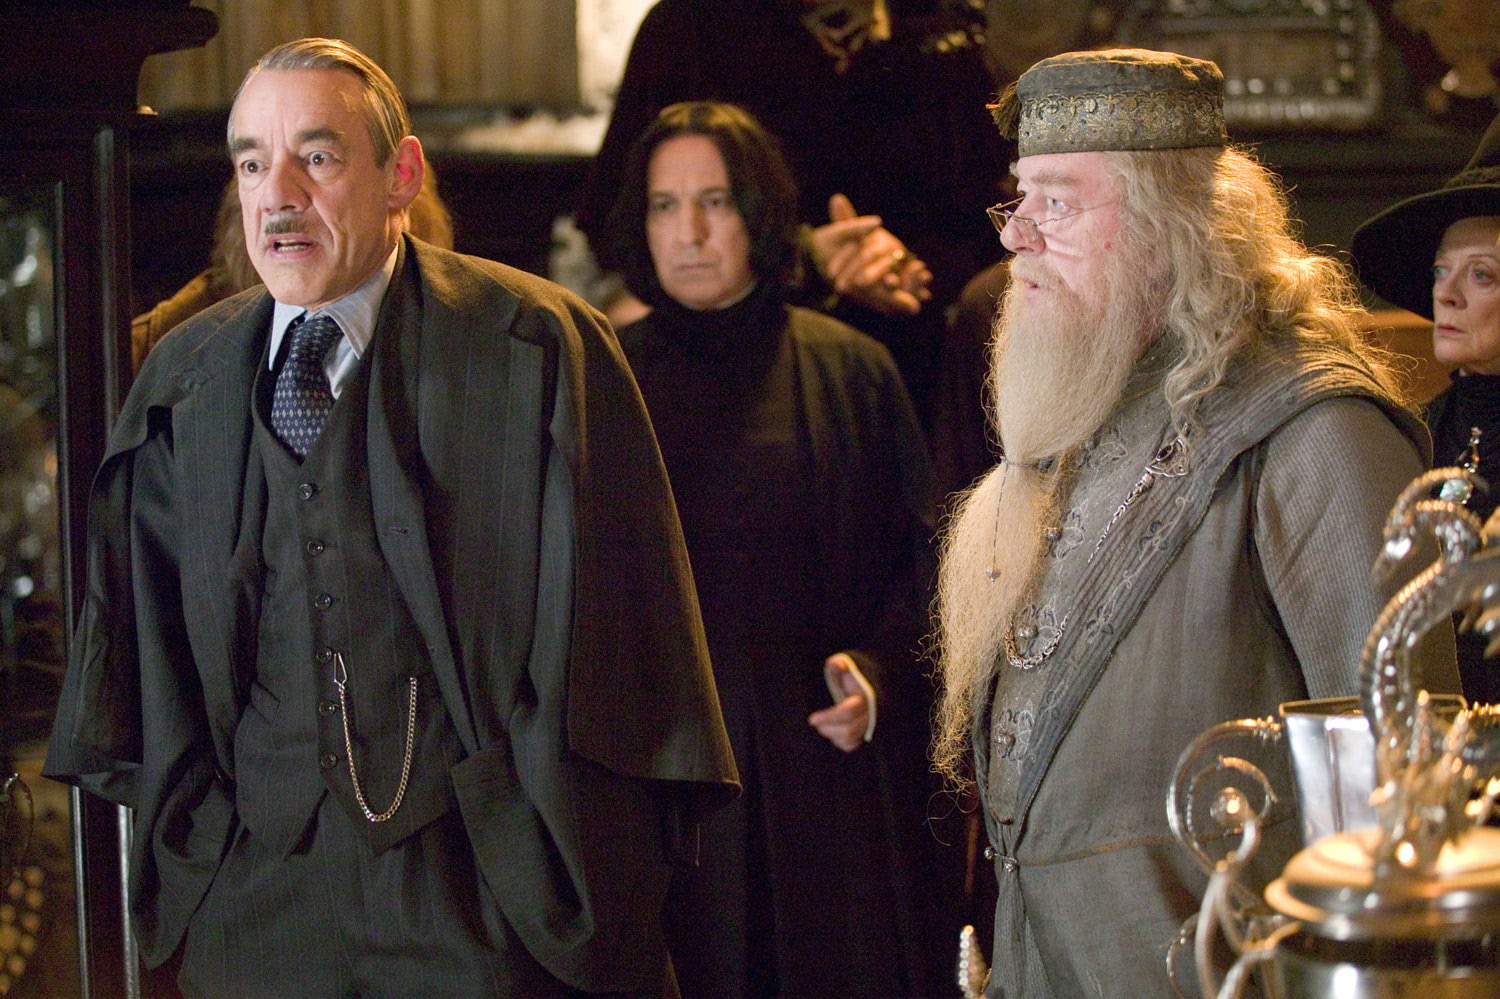 Barty Crouch, Snape, Dumbledore and McGonagall